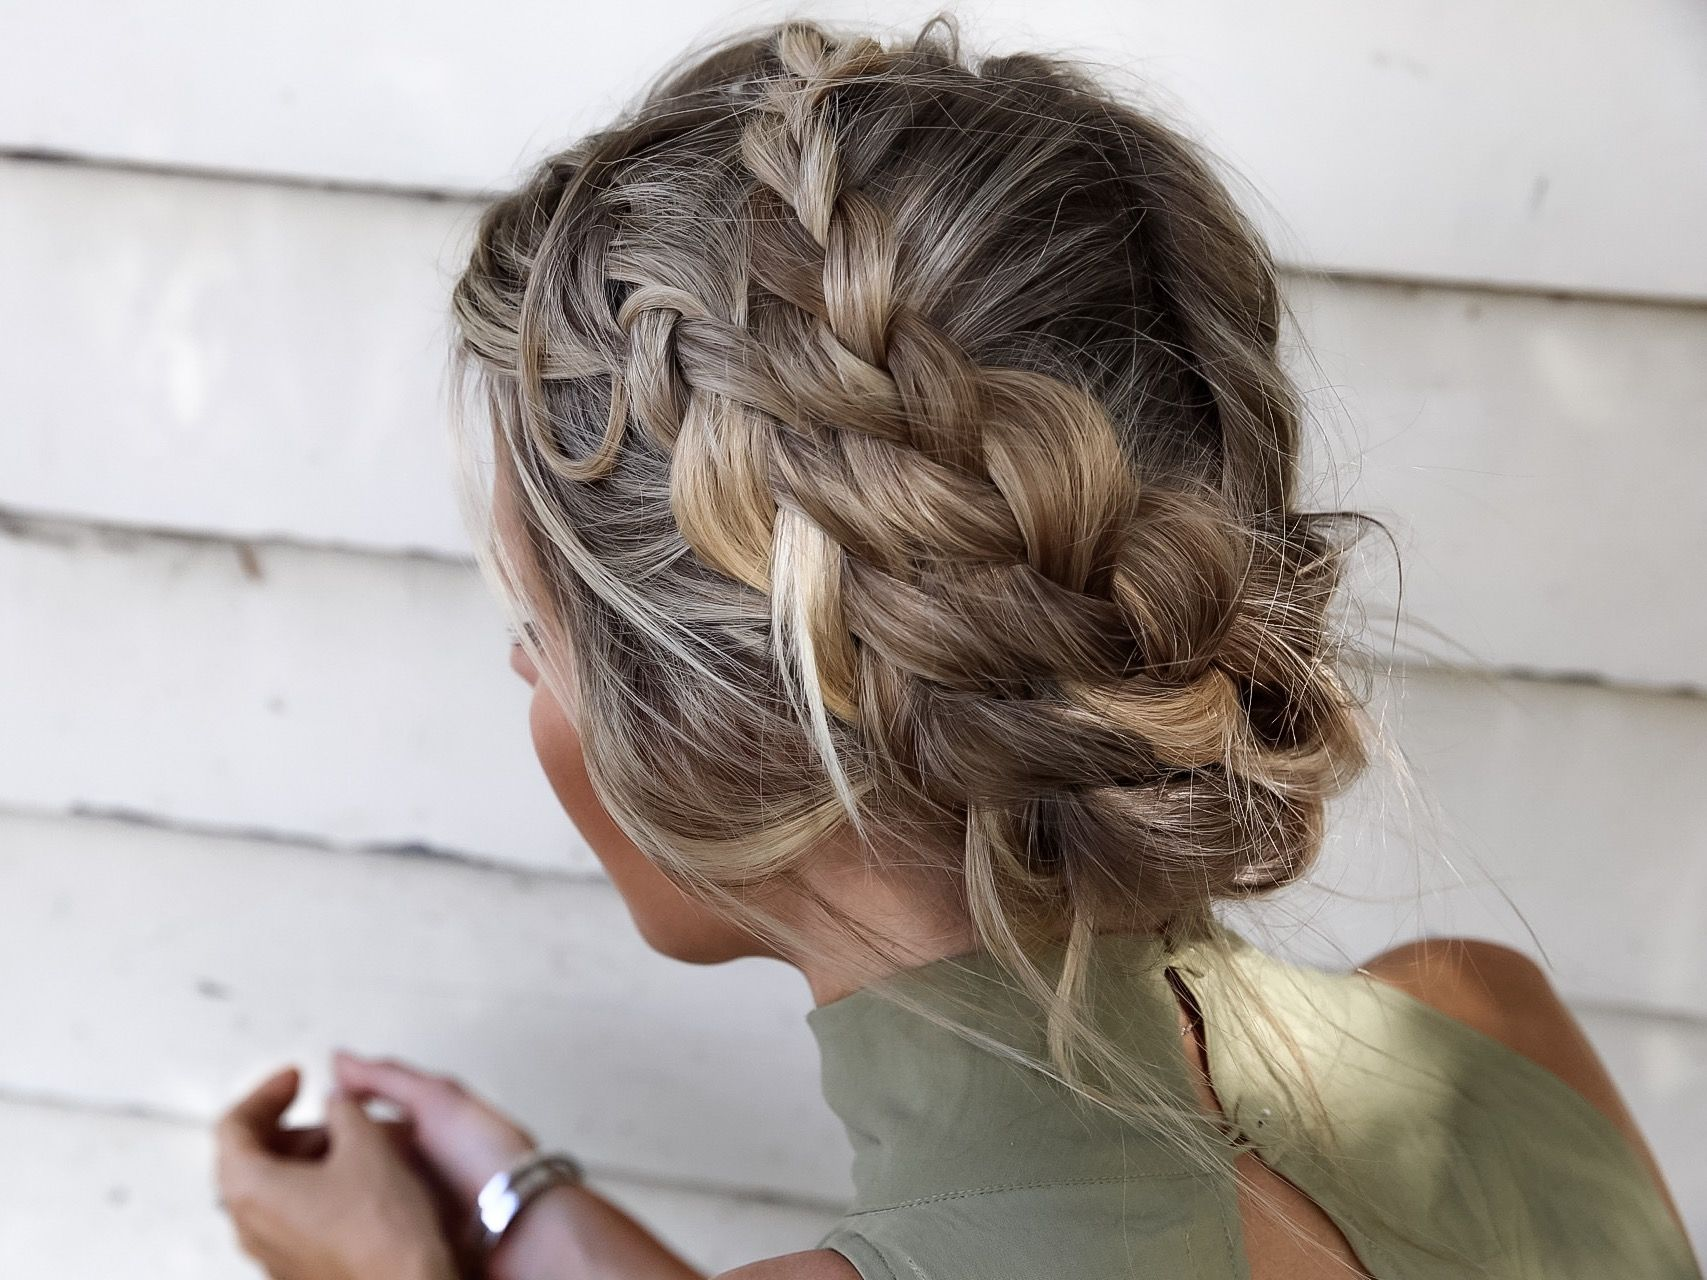 Pin by becca risenhoover on own that ponytail work that updo